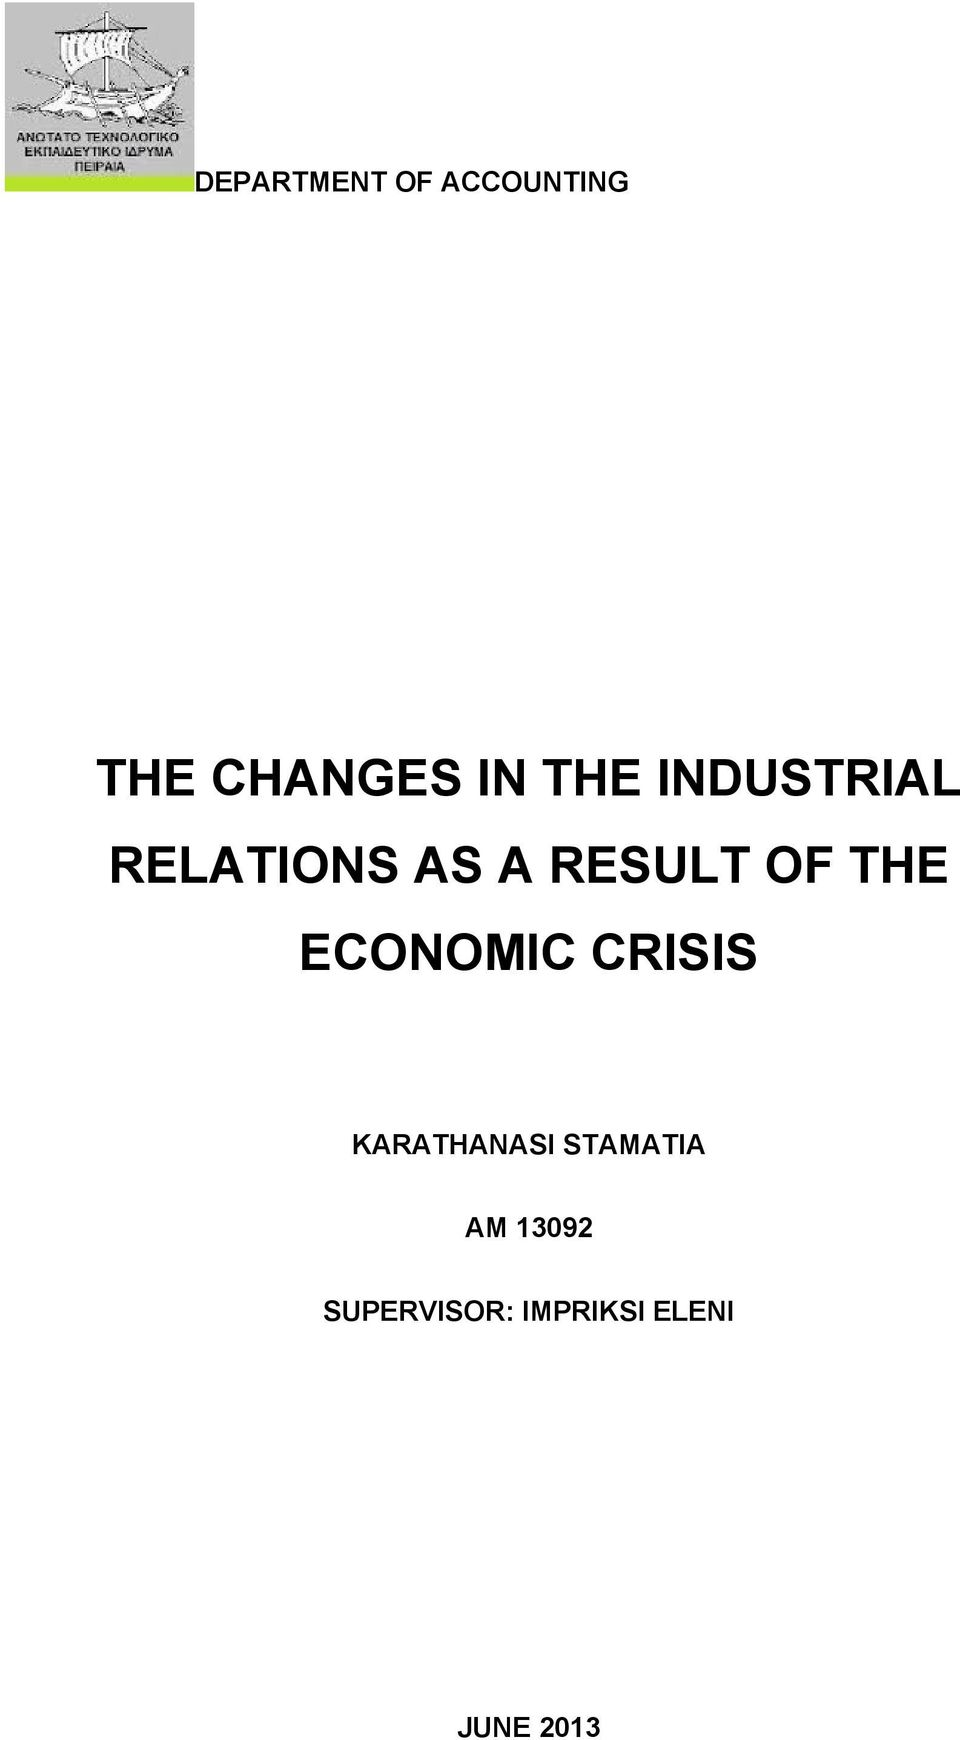 THE ECONOMIC CRISIS KARATHANASI STAMATIA